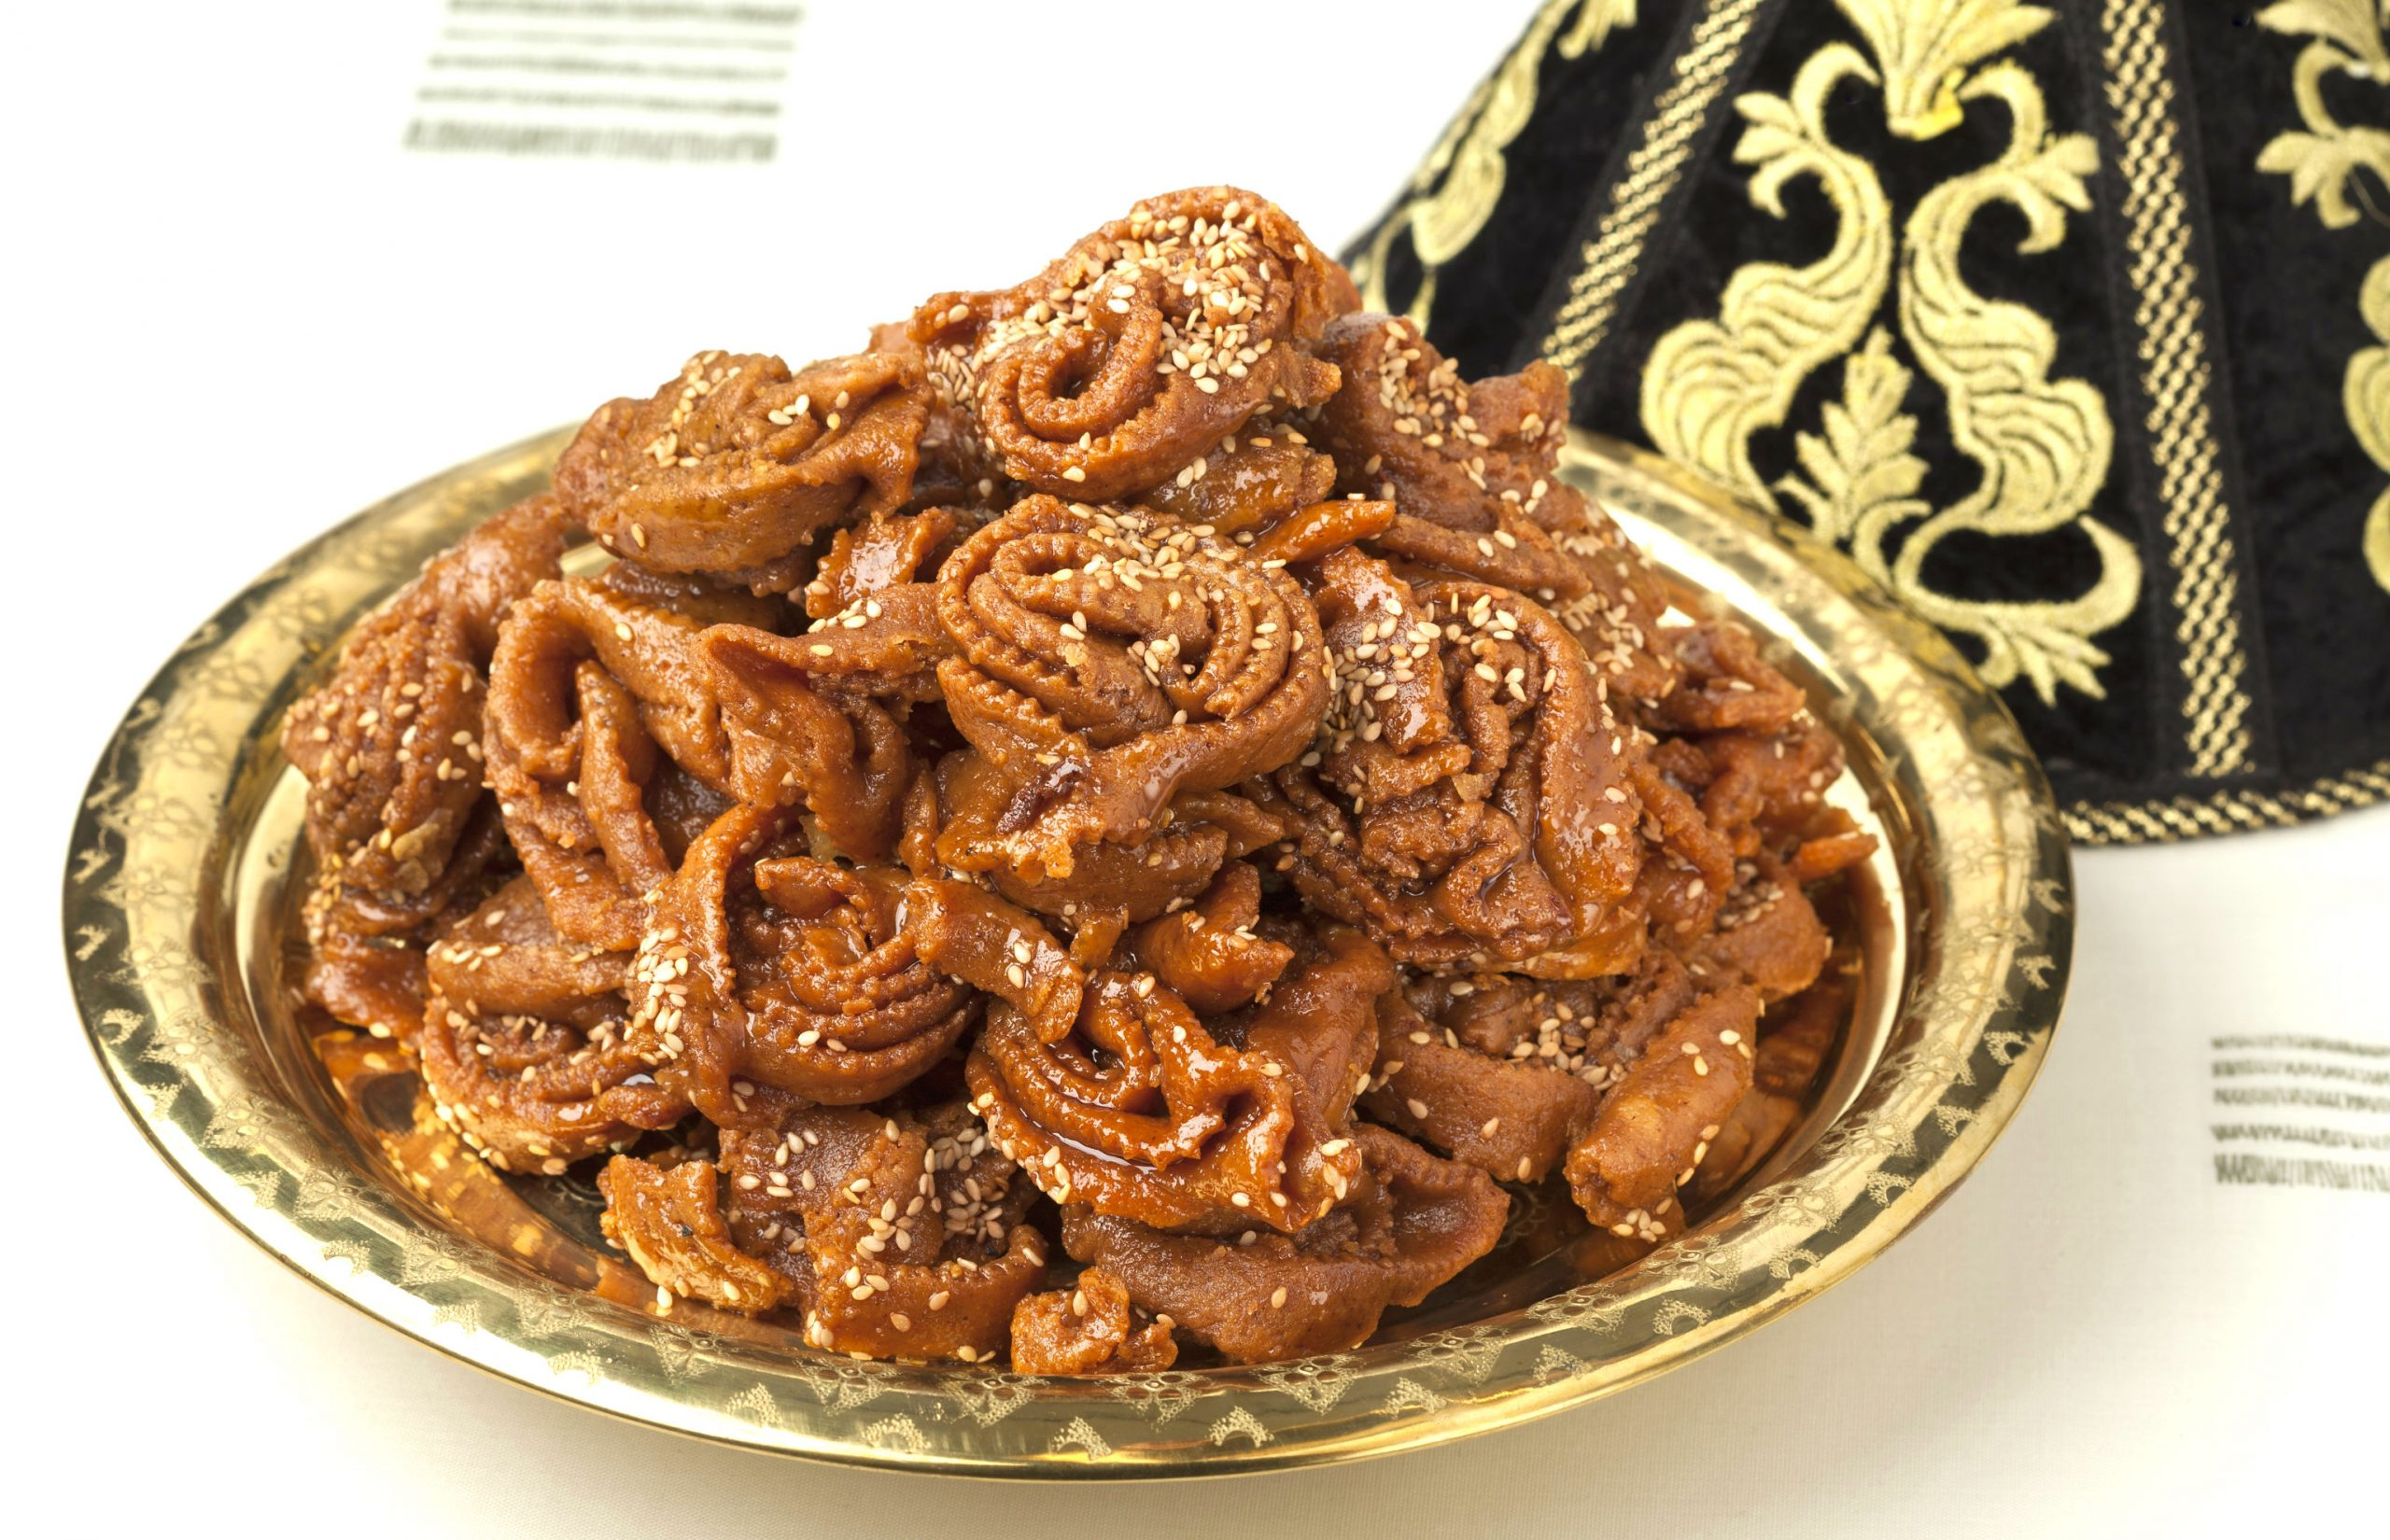 A mound of Moroccan chebakia cookies are mounded on a decorative metal tray.